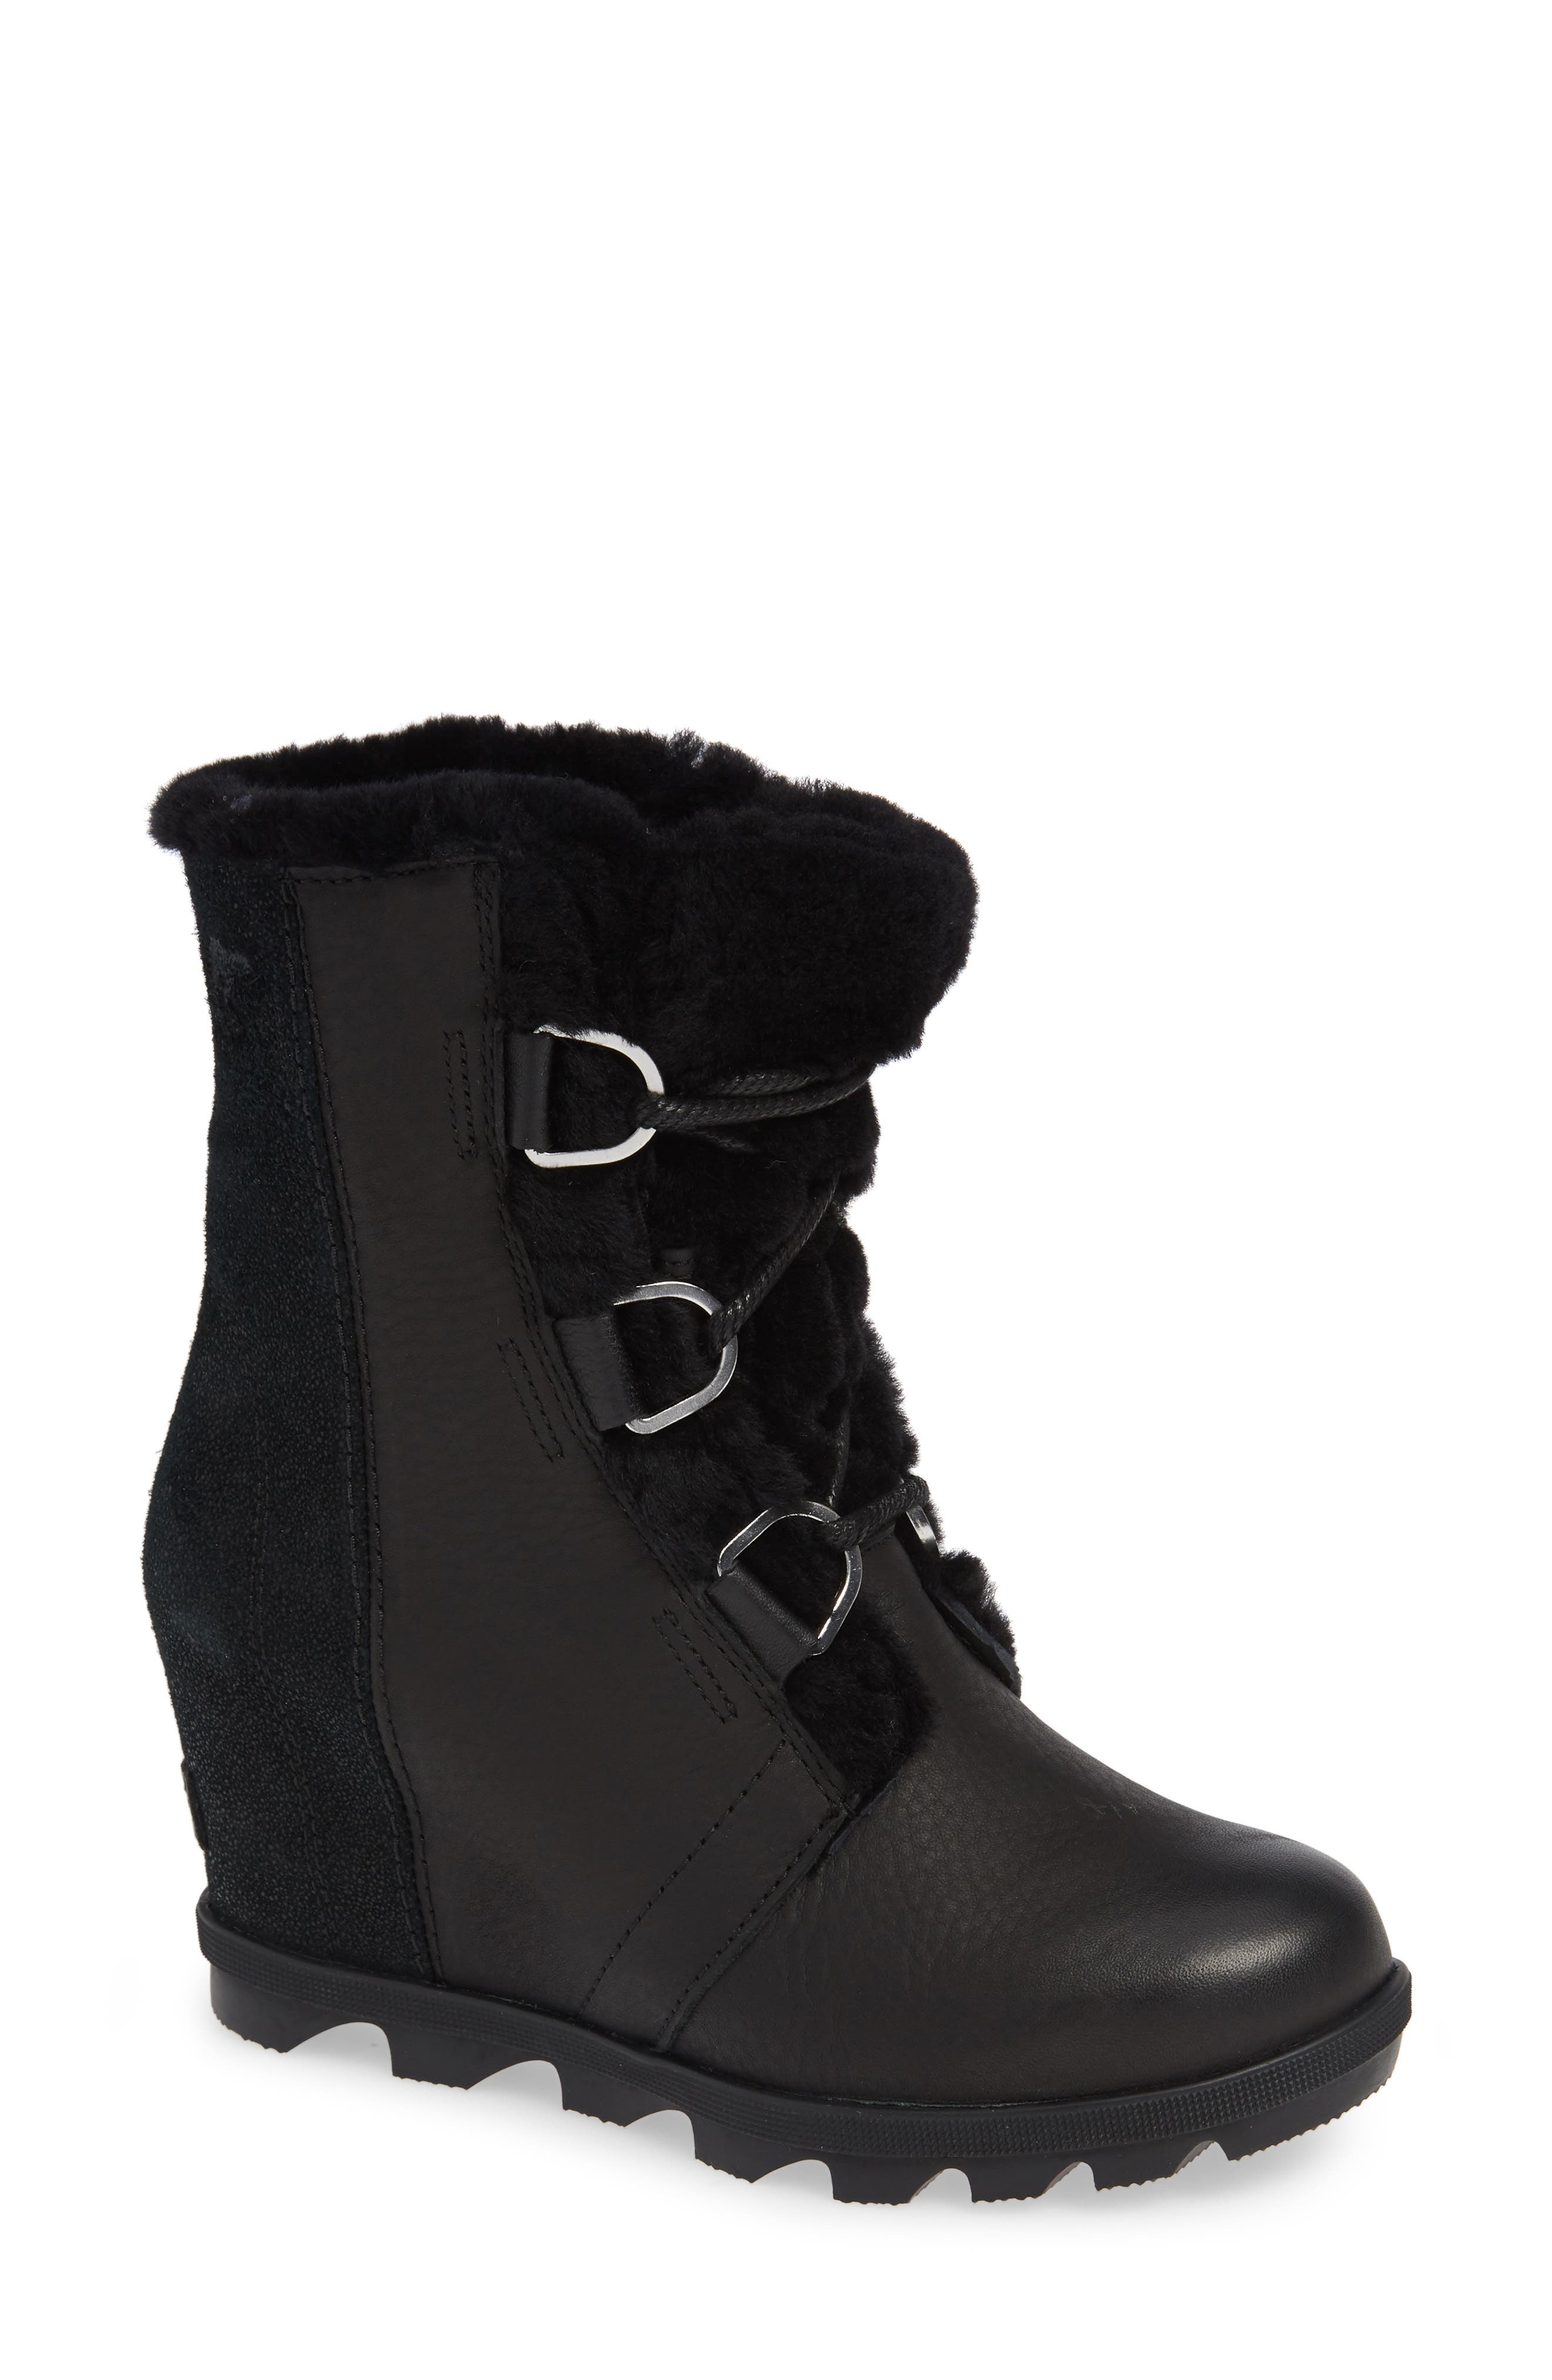 Sorel Joan Of Arctic Ii Lux Wedge Genuine Shearling Bootie